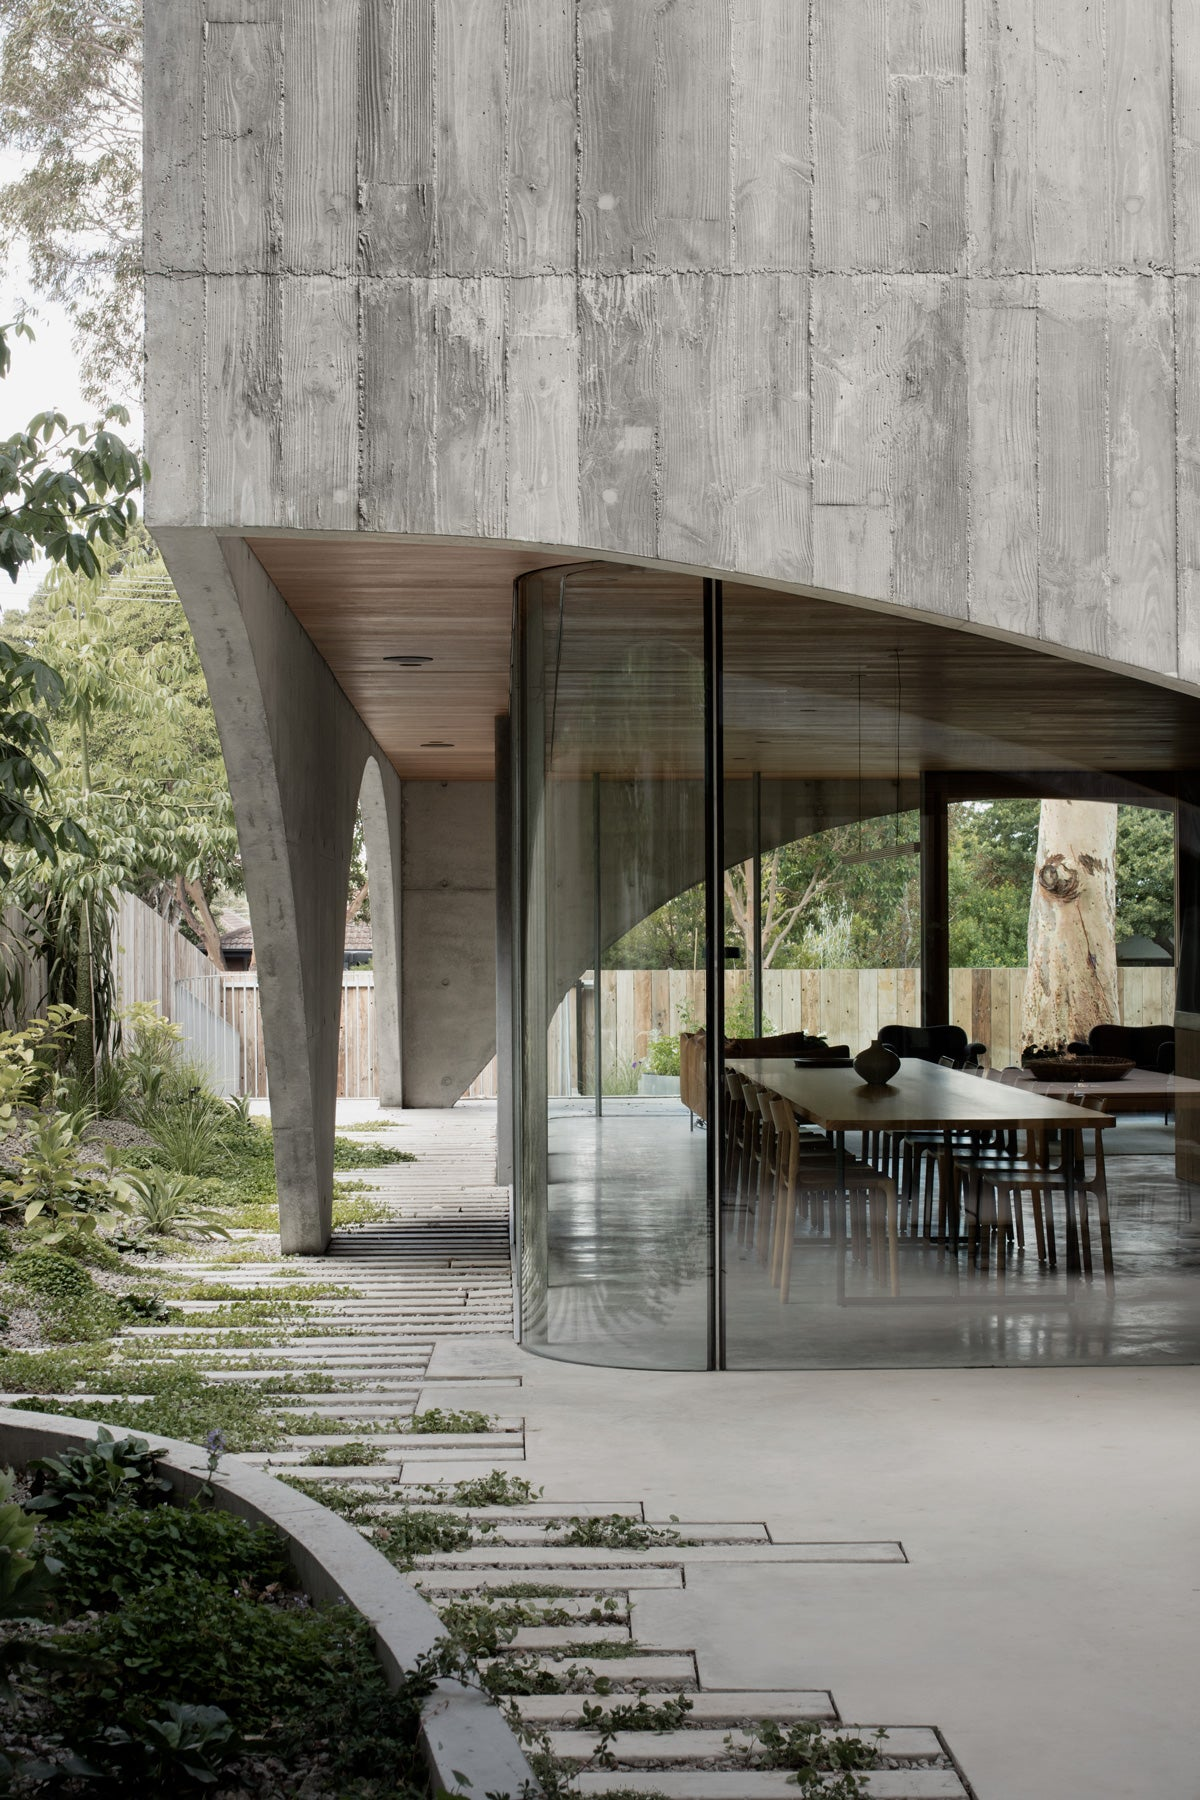 Hawthorn House uses overlapping screens and courtyards to connect with people who live there. Photo: Ben Hosking